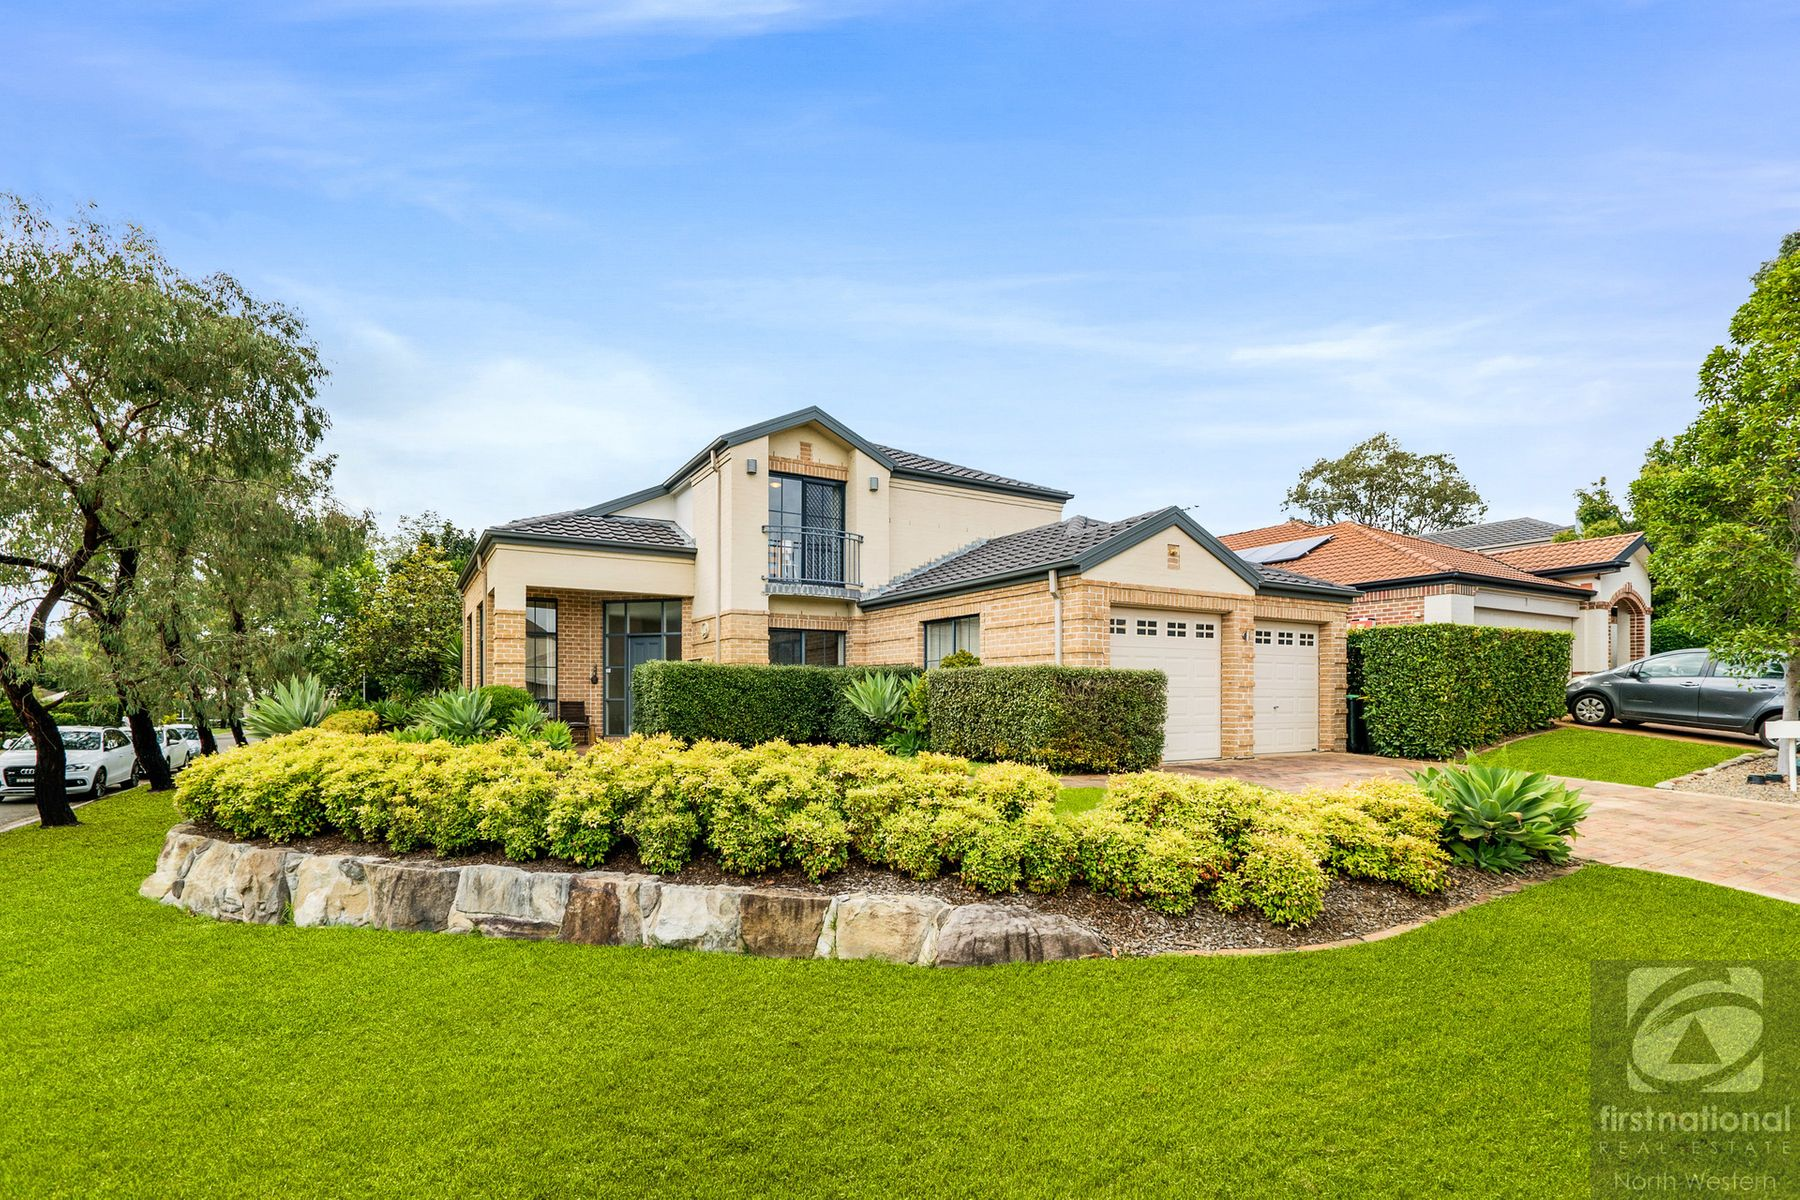 66 Wilkins Avenue, Beaumont Hills, NSW 2155